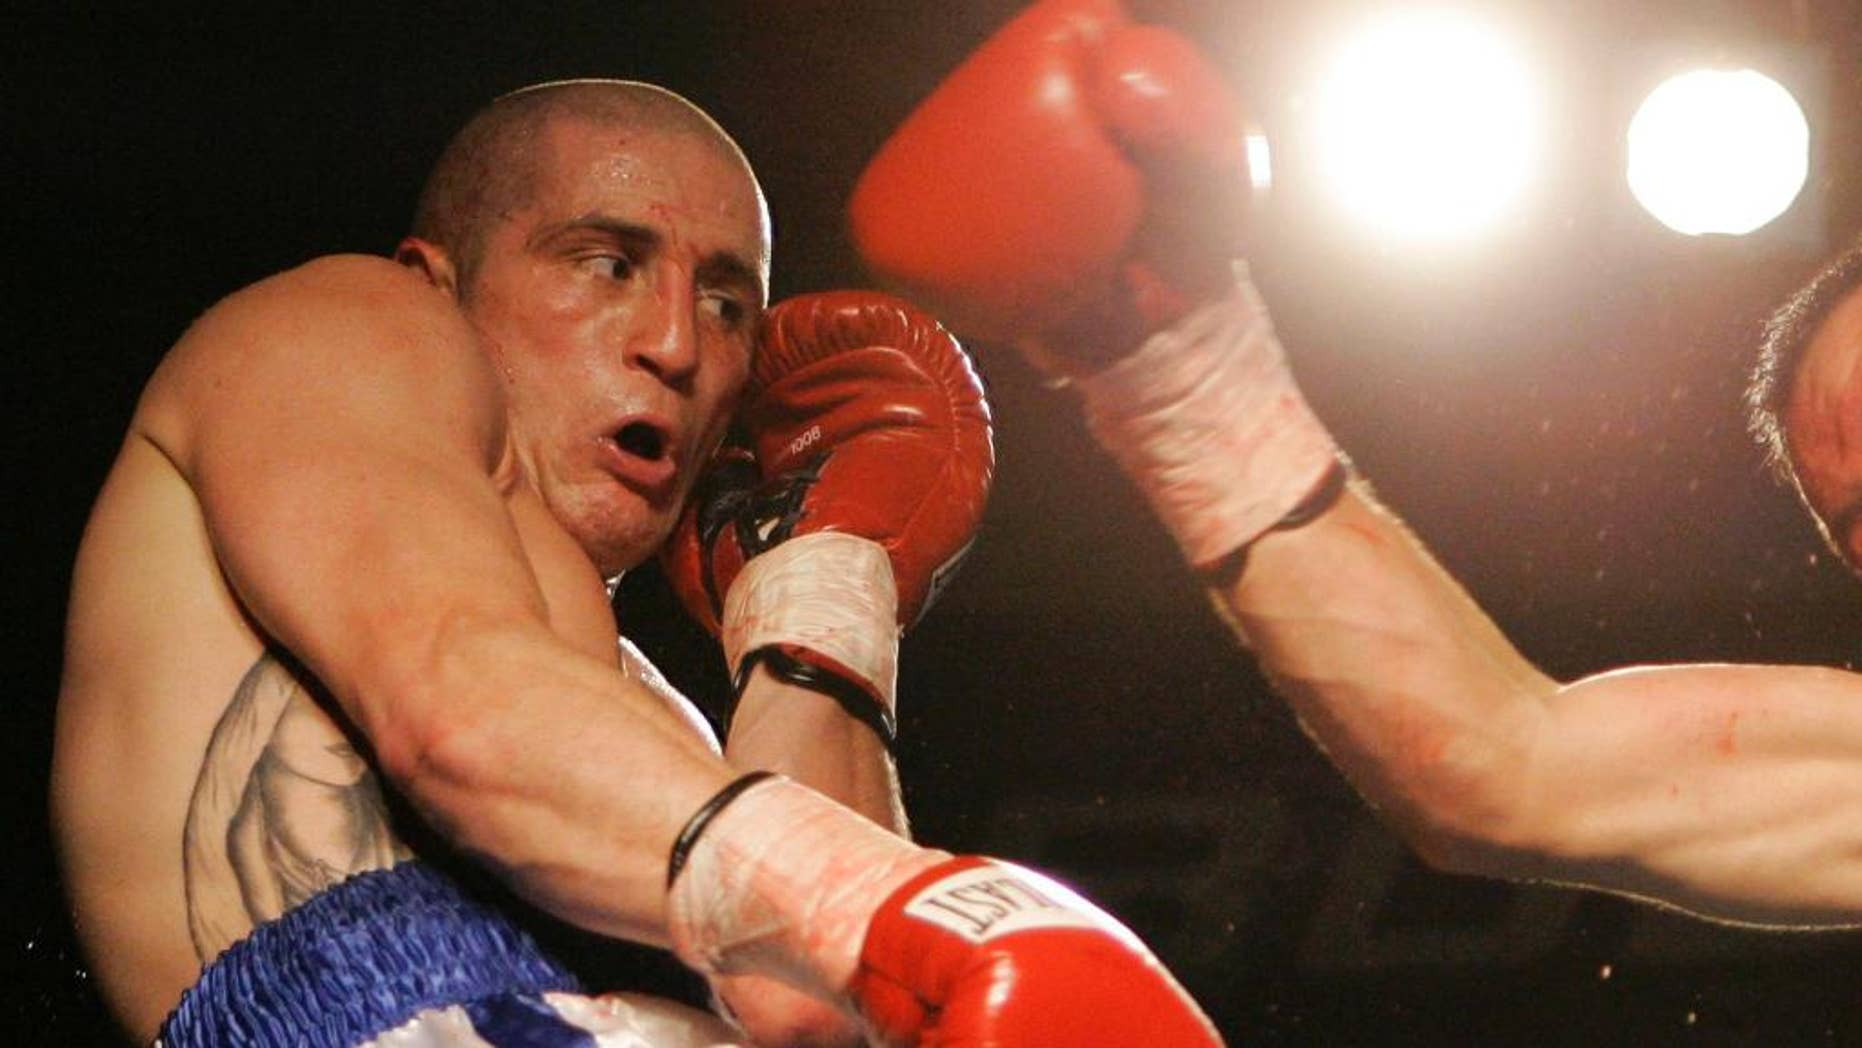 FILE - In this Nov. 22, 2006, file photo, Jesus Francisco Zepeda, of Mexico, misses with a right to Paul Spadafora, left, during their boxing bout in Erie, Pa. Spadafora is in jail again, this time for allegedly stabbing his brother Wednesday, Dec. 21, 2016, during an argument and then fighting with police officers called to intervene, according to a criminal complaint. (AP Photo/Keith Srakocic, File)